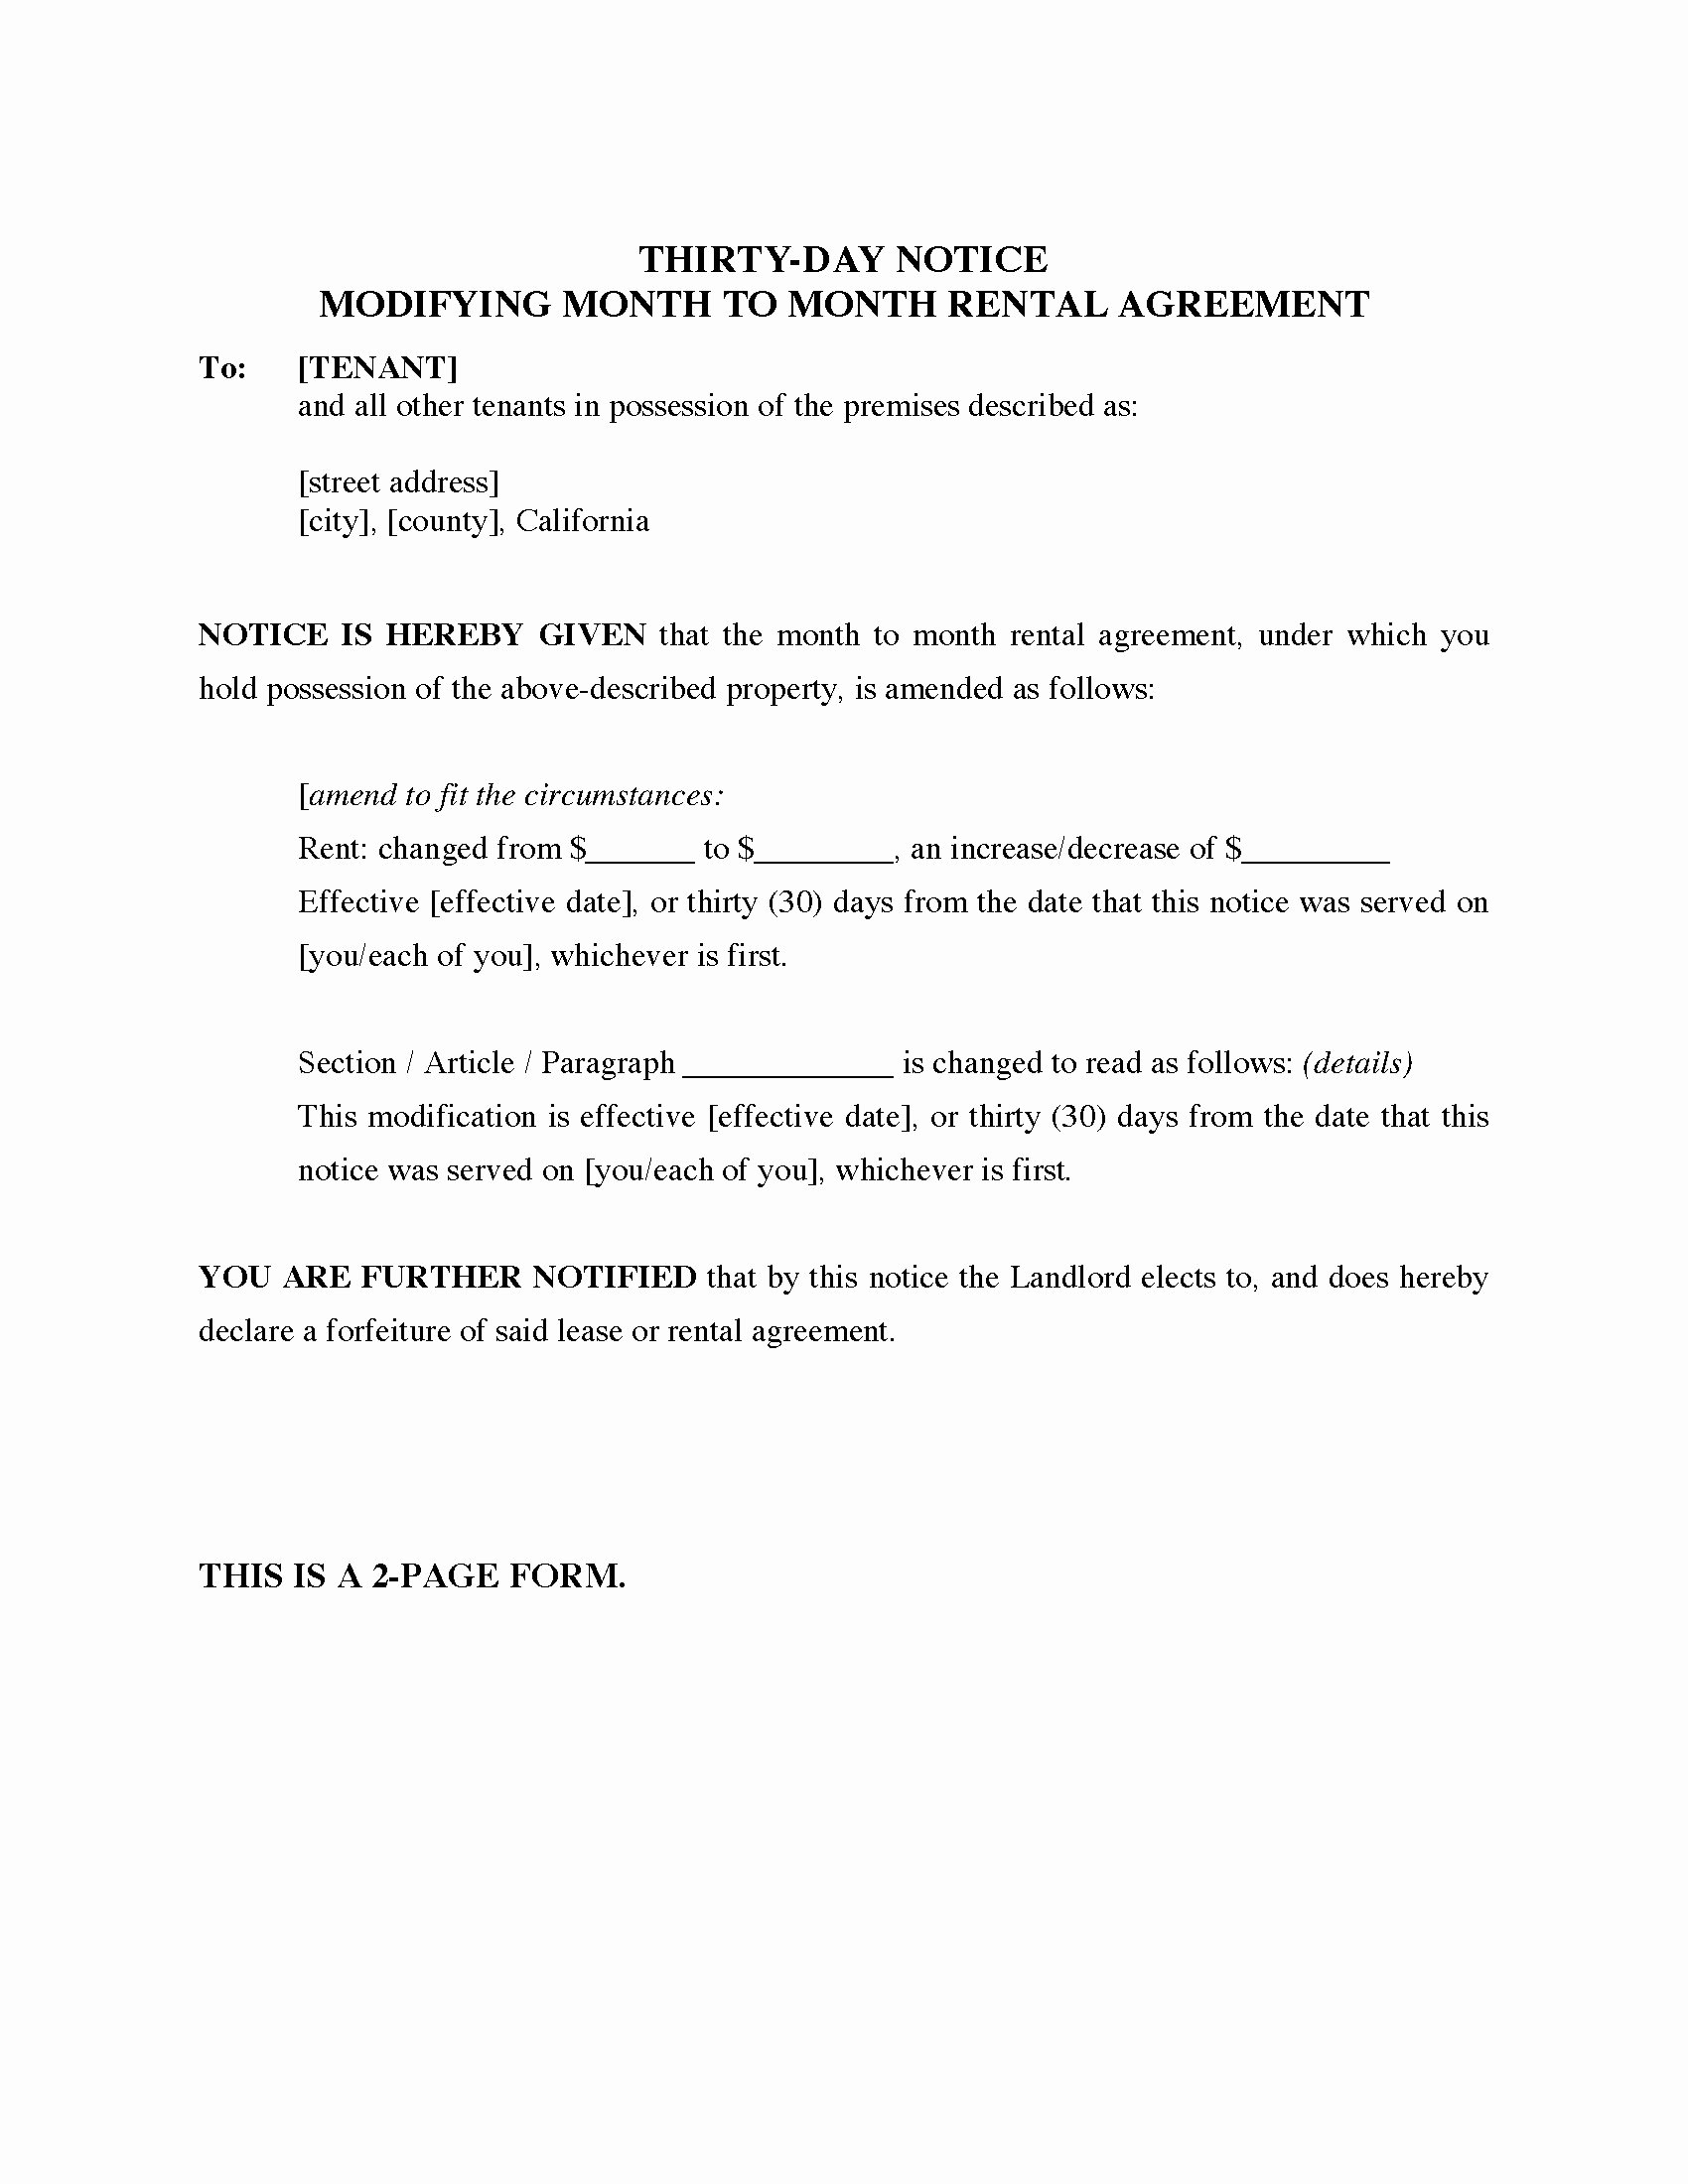 30 Day Notice to Landlord California Template Luxury California 30 Day Notice Modifying Month to Month Rental